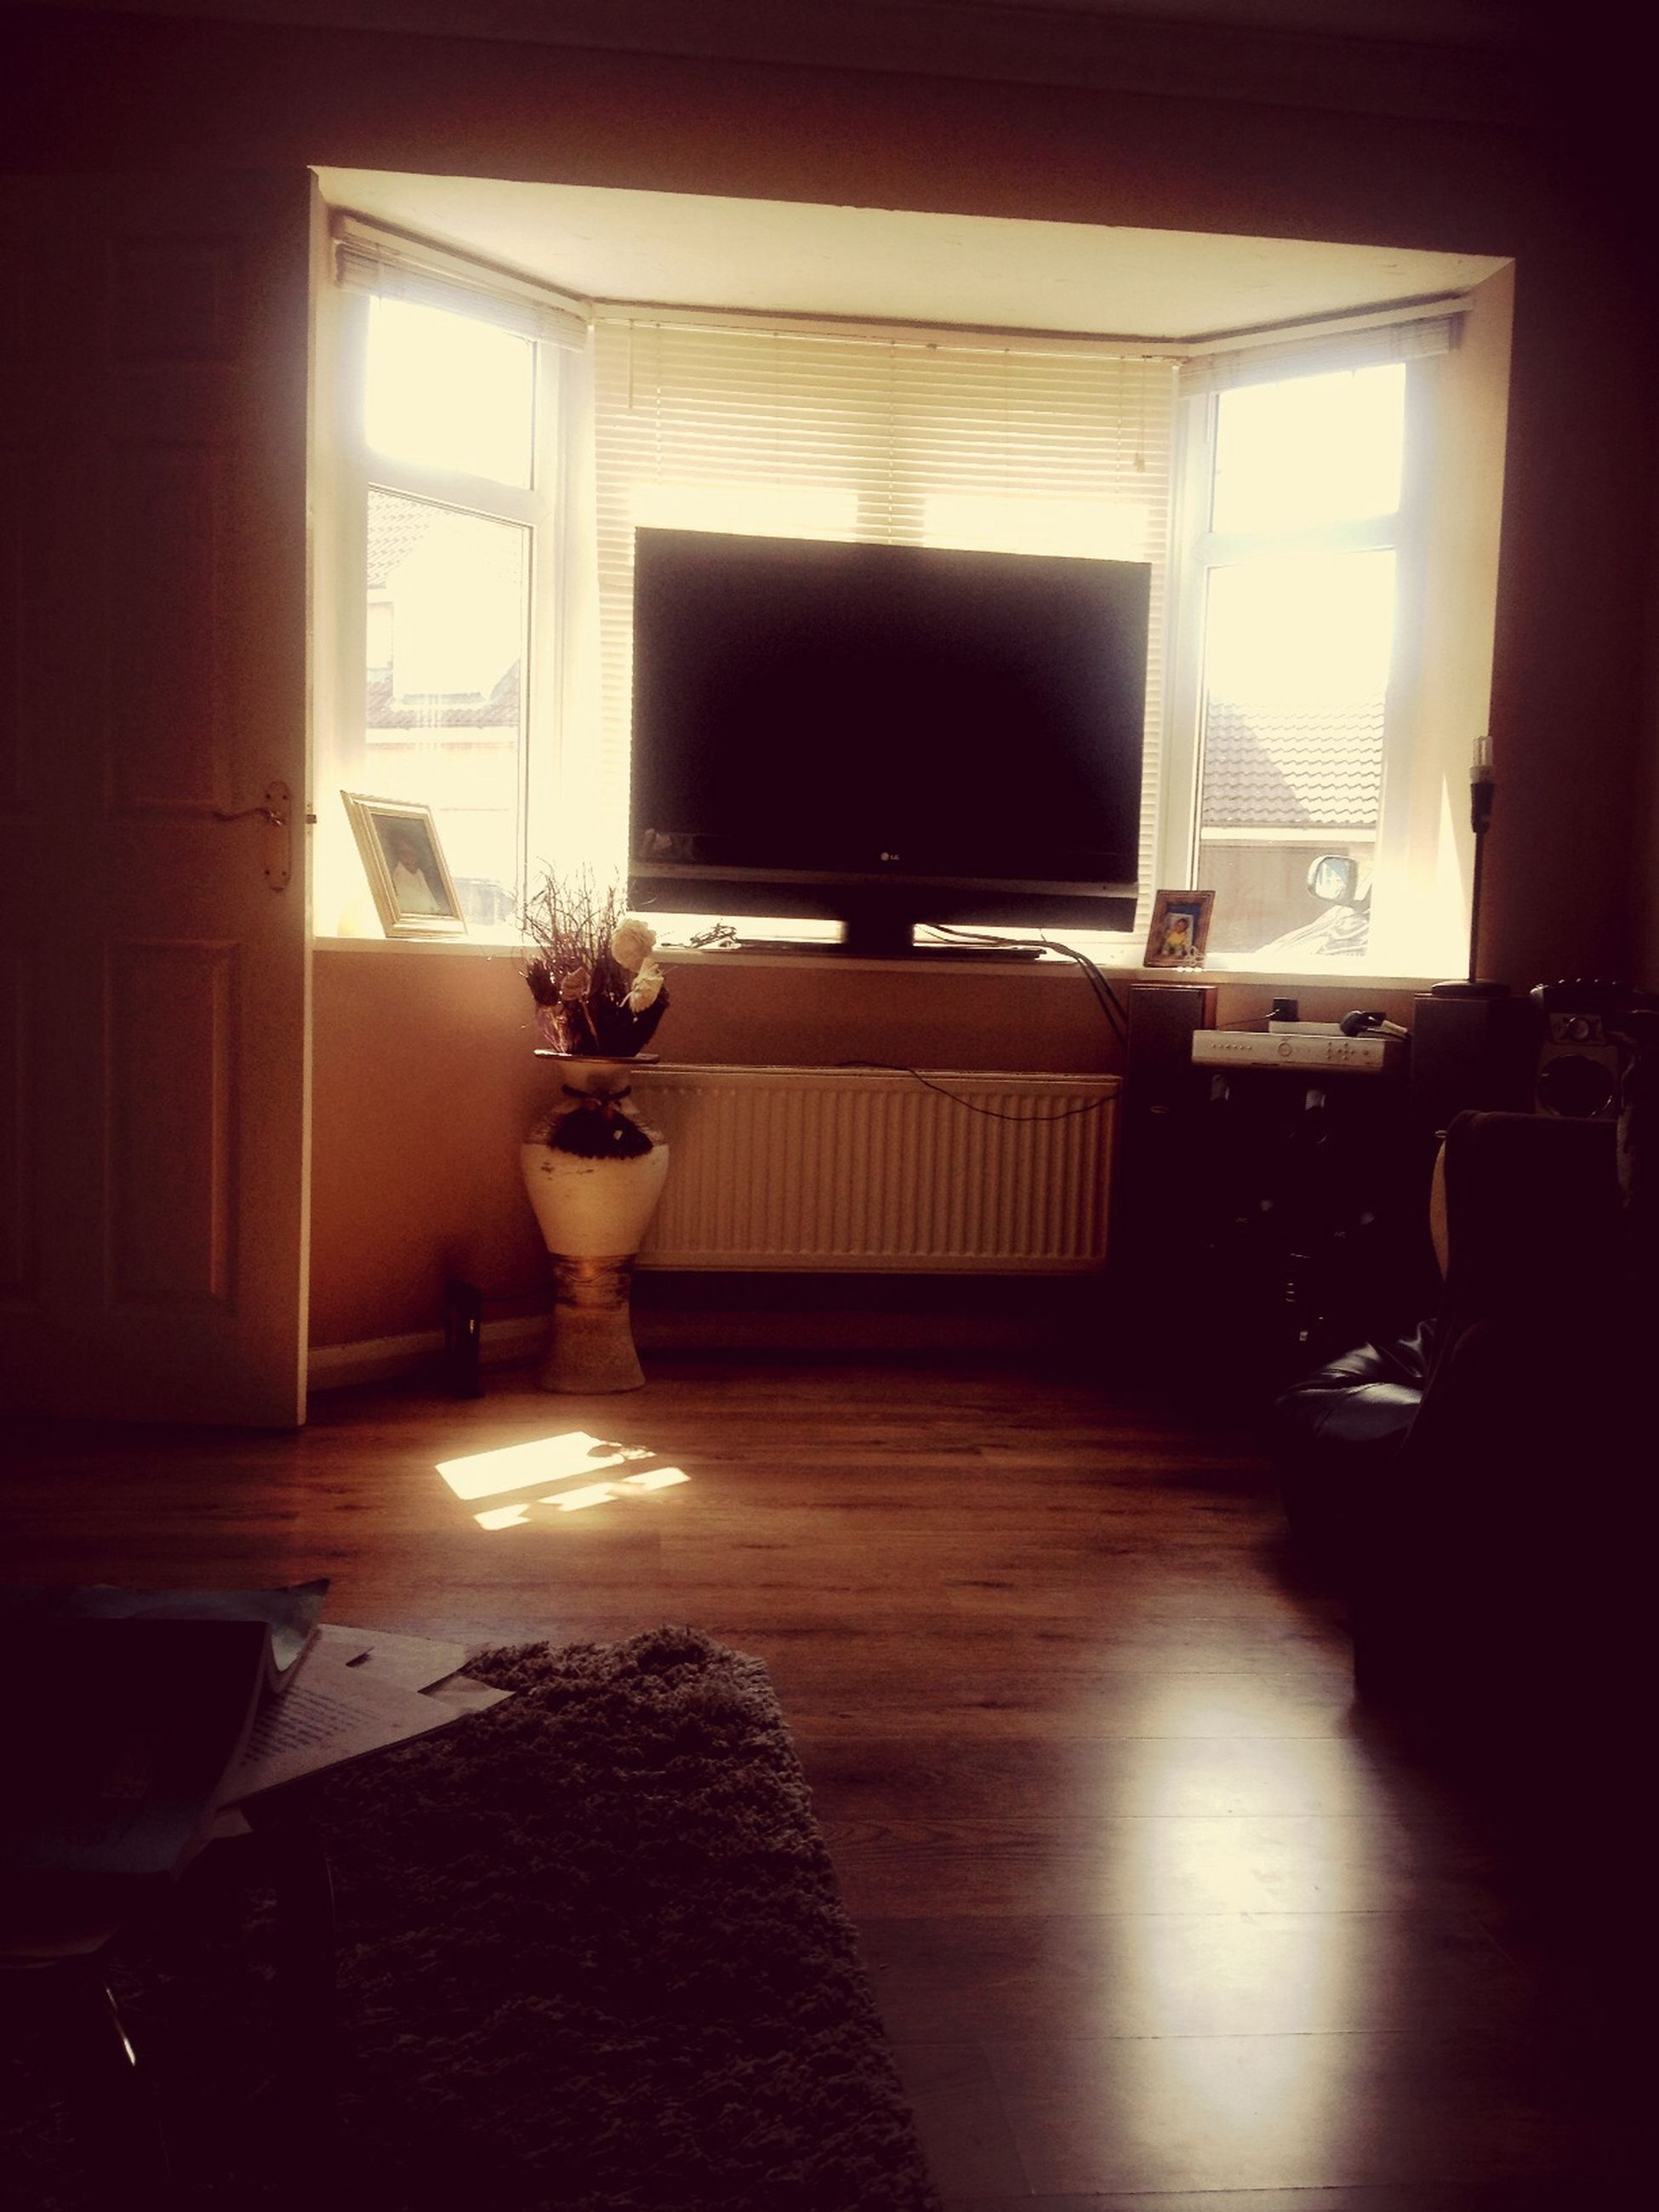 indoors, window, table, home interior, architecture, house, chair, built structure, glass - material, absence, door, reflection, domestic room, transparent, room, no people, dark, empty, open, living room